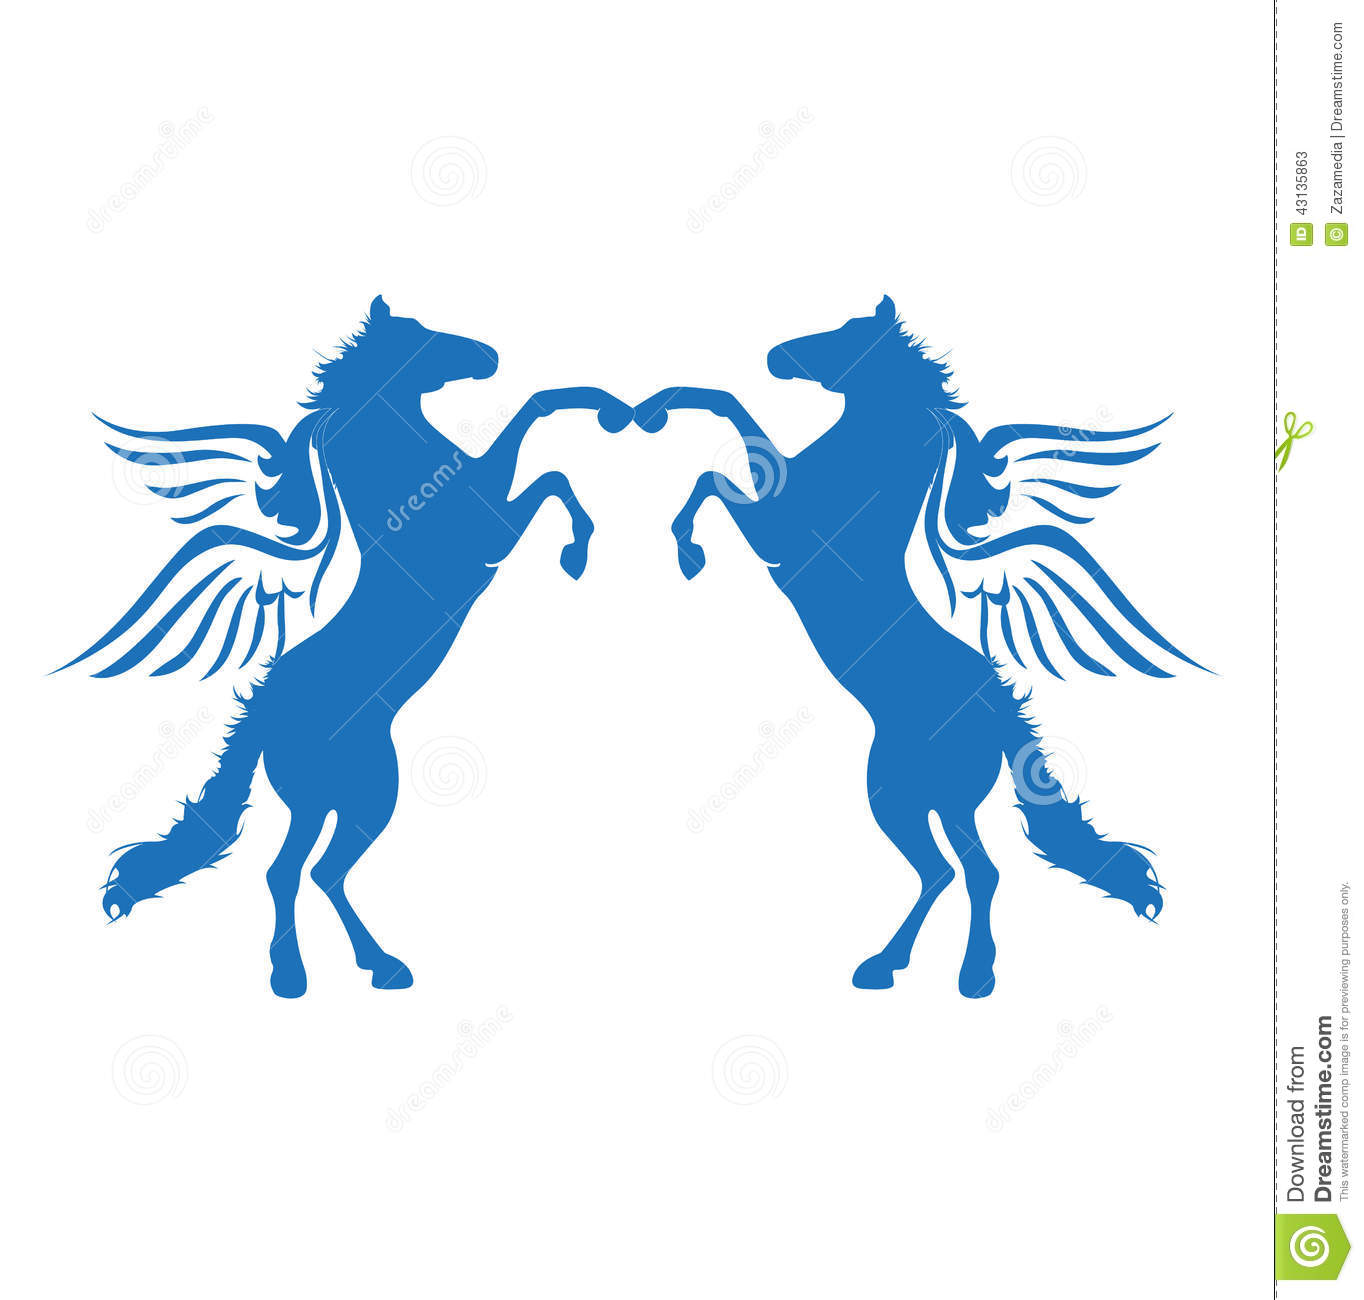 Gradient Abstract Logo Template: Blue Horse Wings Logo Icon Stock Vector. Illustration Of